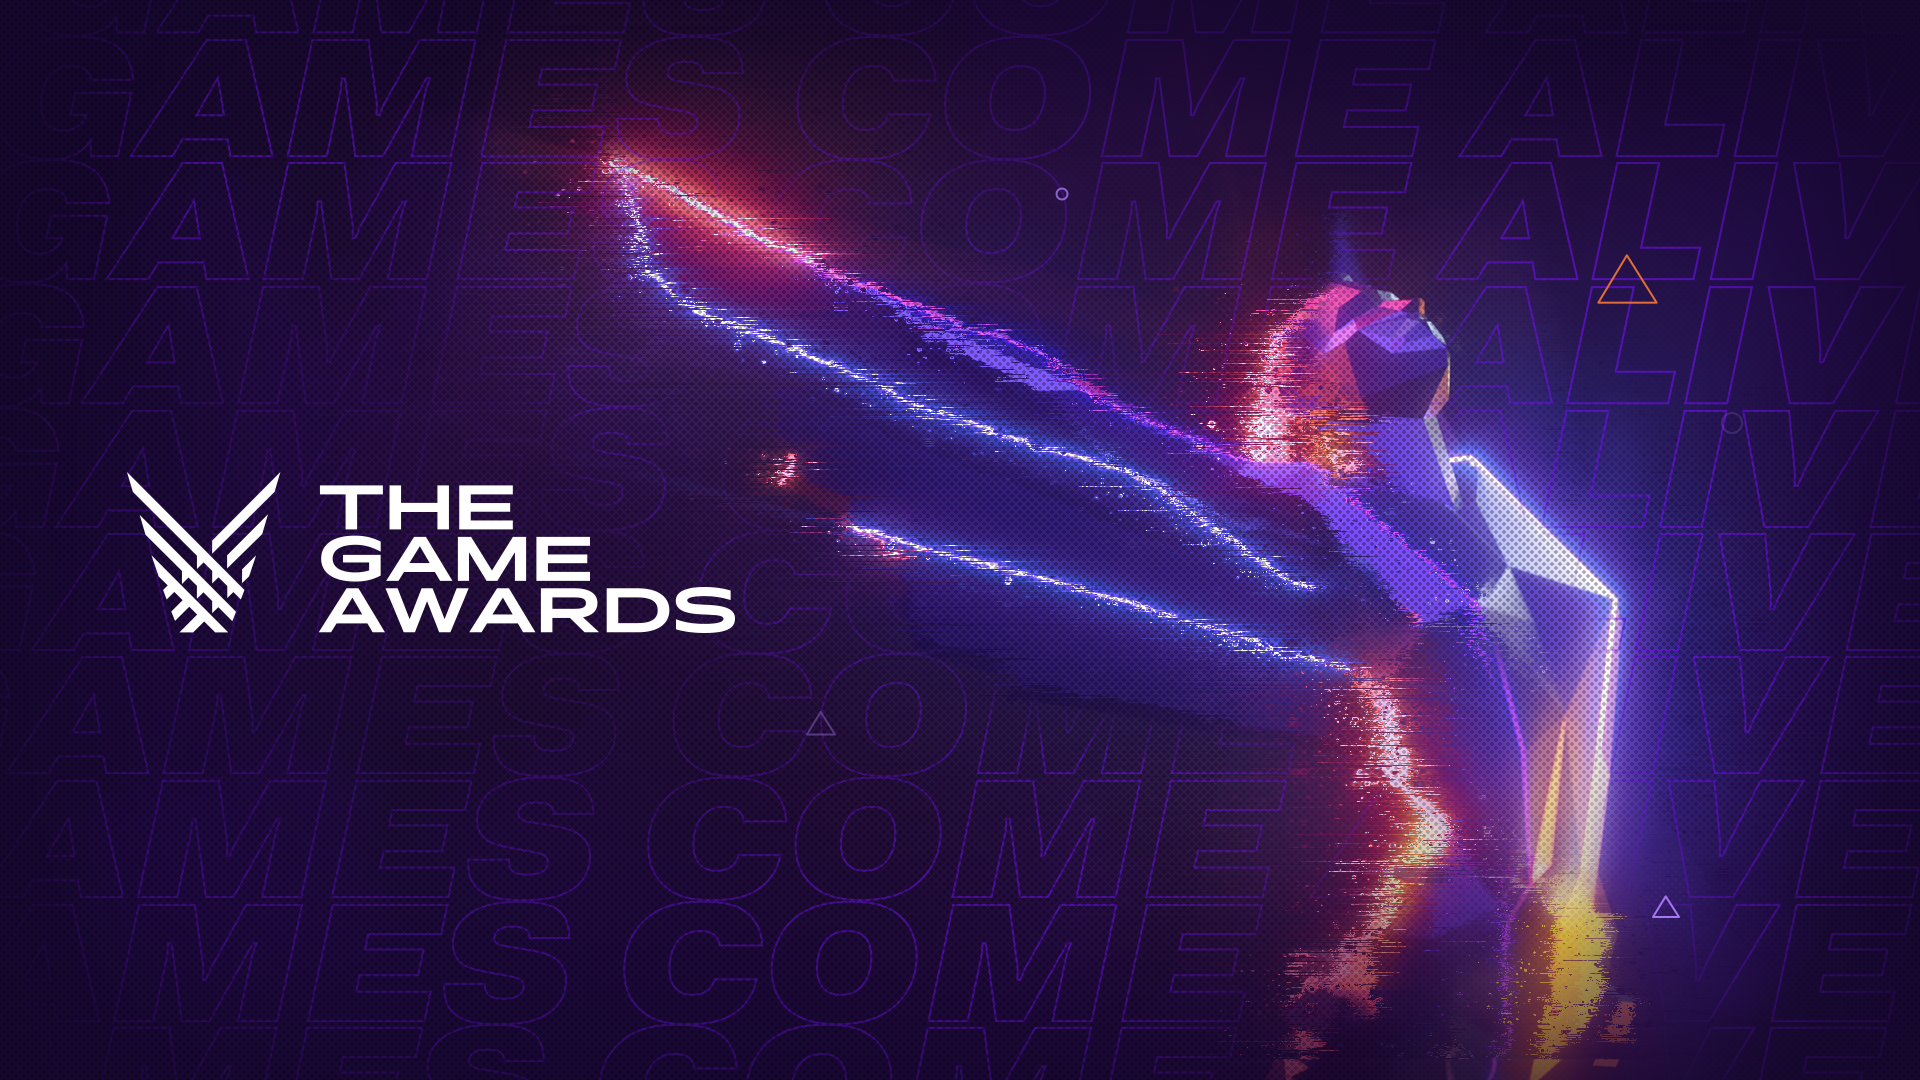 The Game Awards 2019 22112019 1